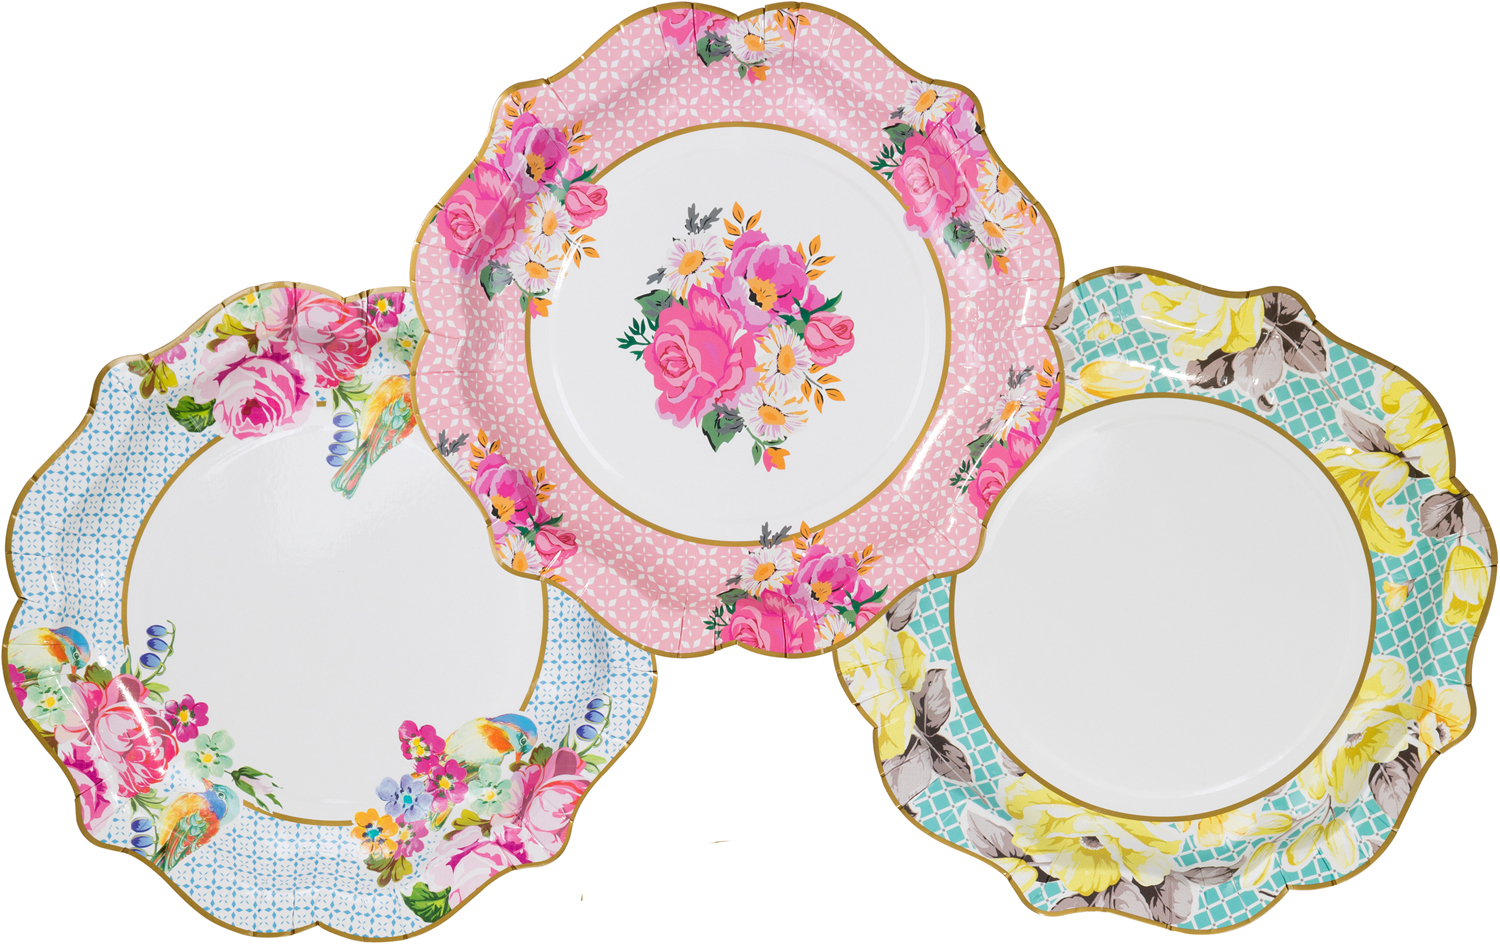 12 Luxury Vintage Style Afternoon Tea Medium paper Plates Shabby Chic 3 designs  sc 1 st  eBay : shabby chic paper plates - Pezcame.Com